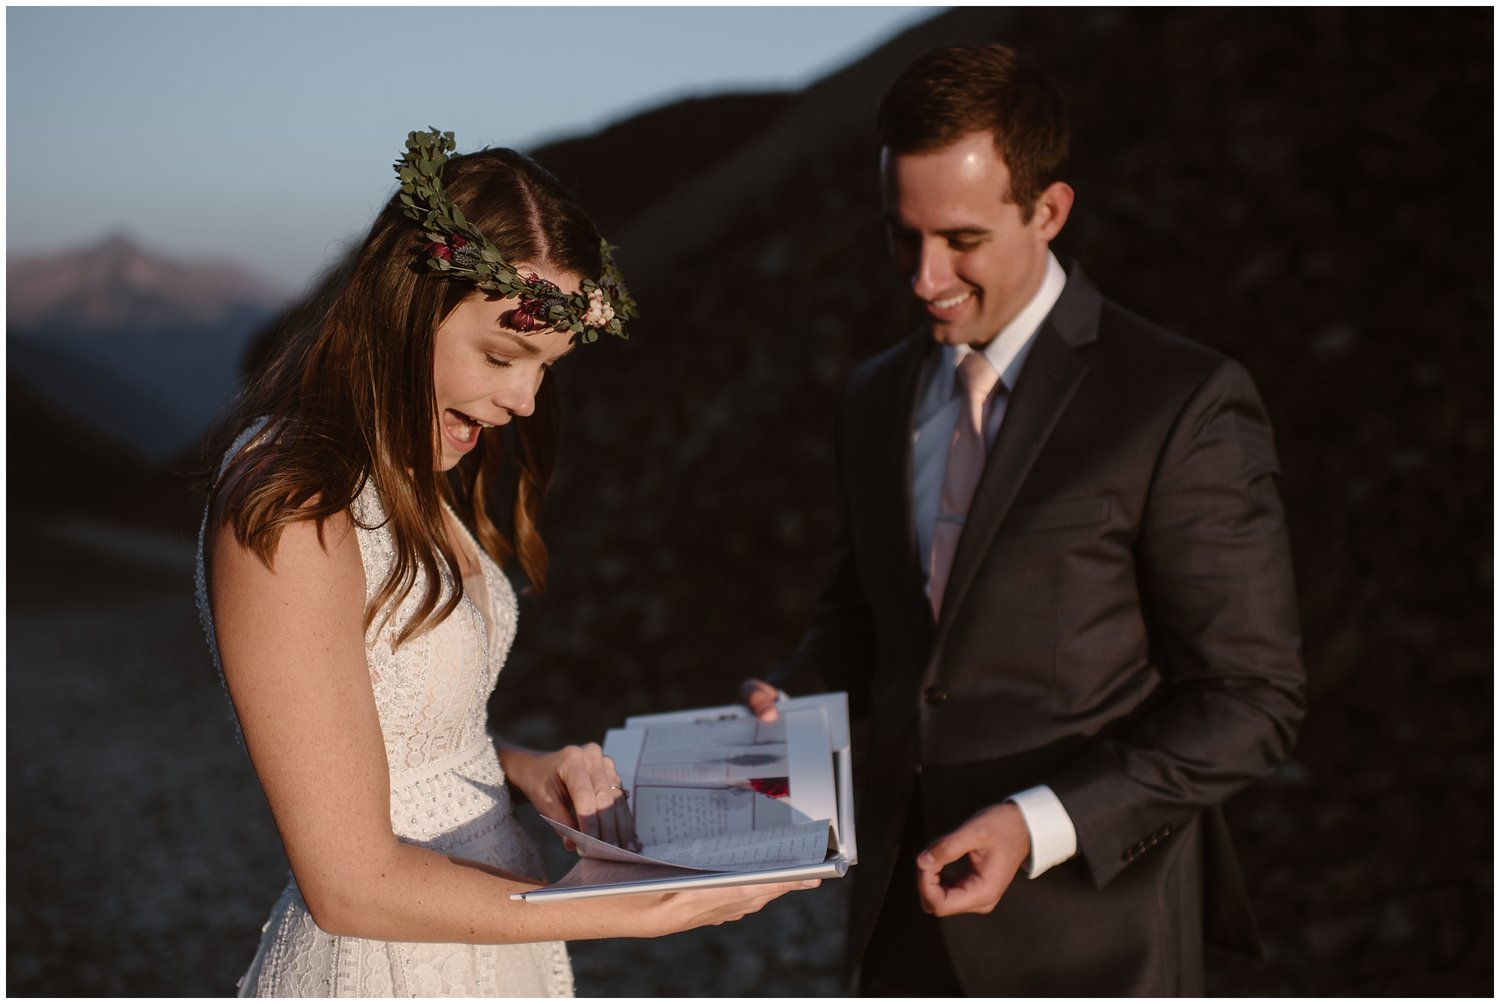 A bride and groom smile as they open a folder of letters from family and friends.